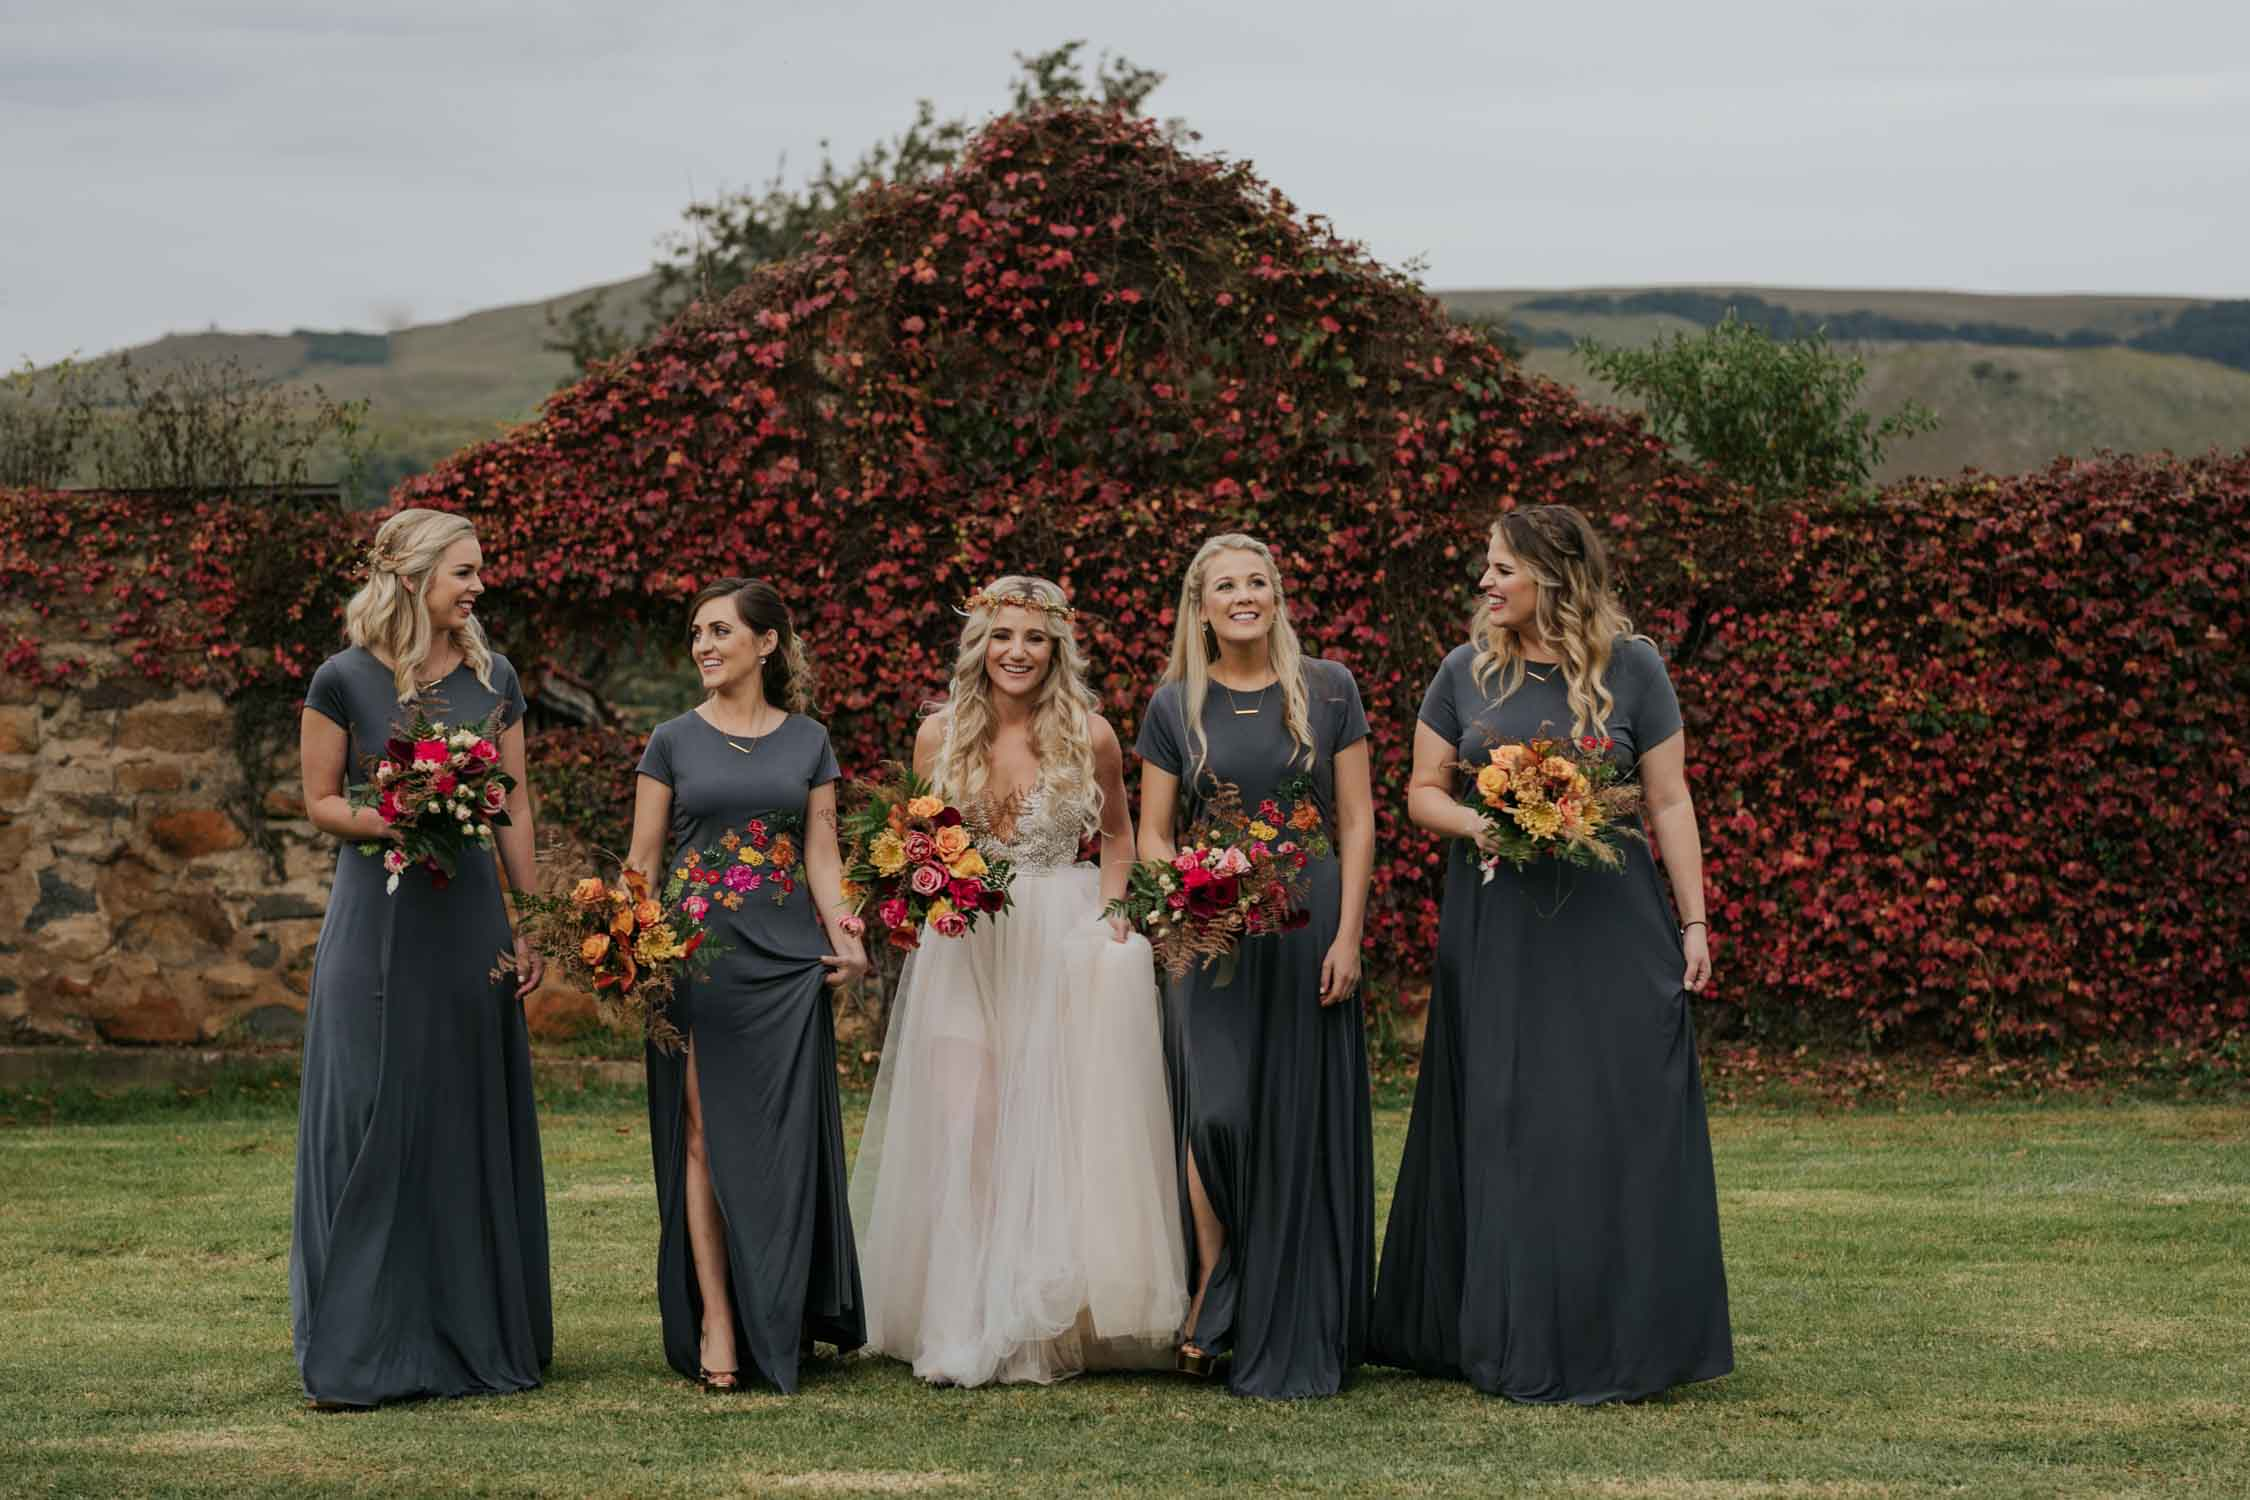 Bride who looks like game of thrones mother of dragons with her bridesmaids walking and laughing together at her farm wedding in front of a old ruin building. Candid and natural retinue photographs.